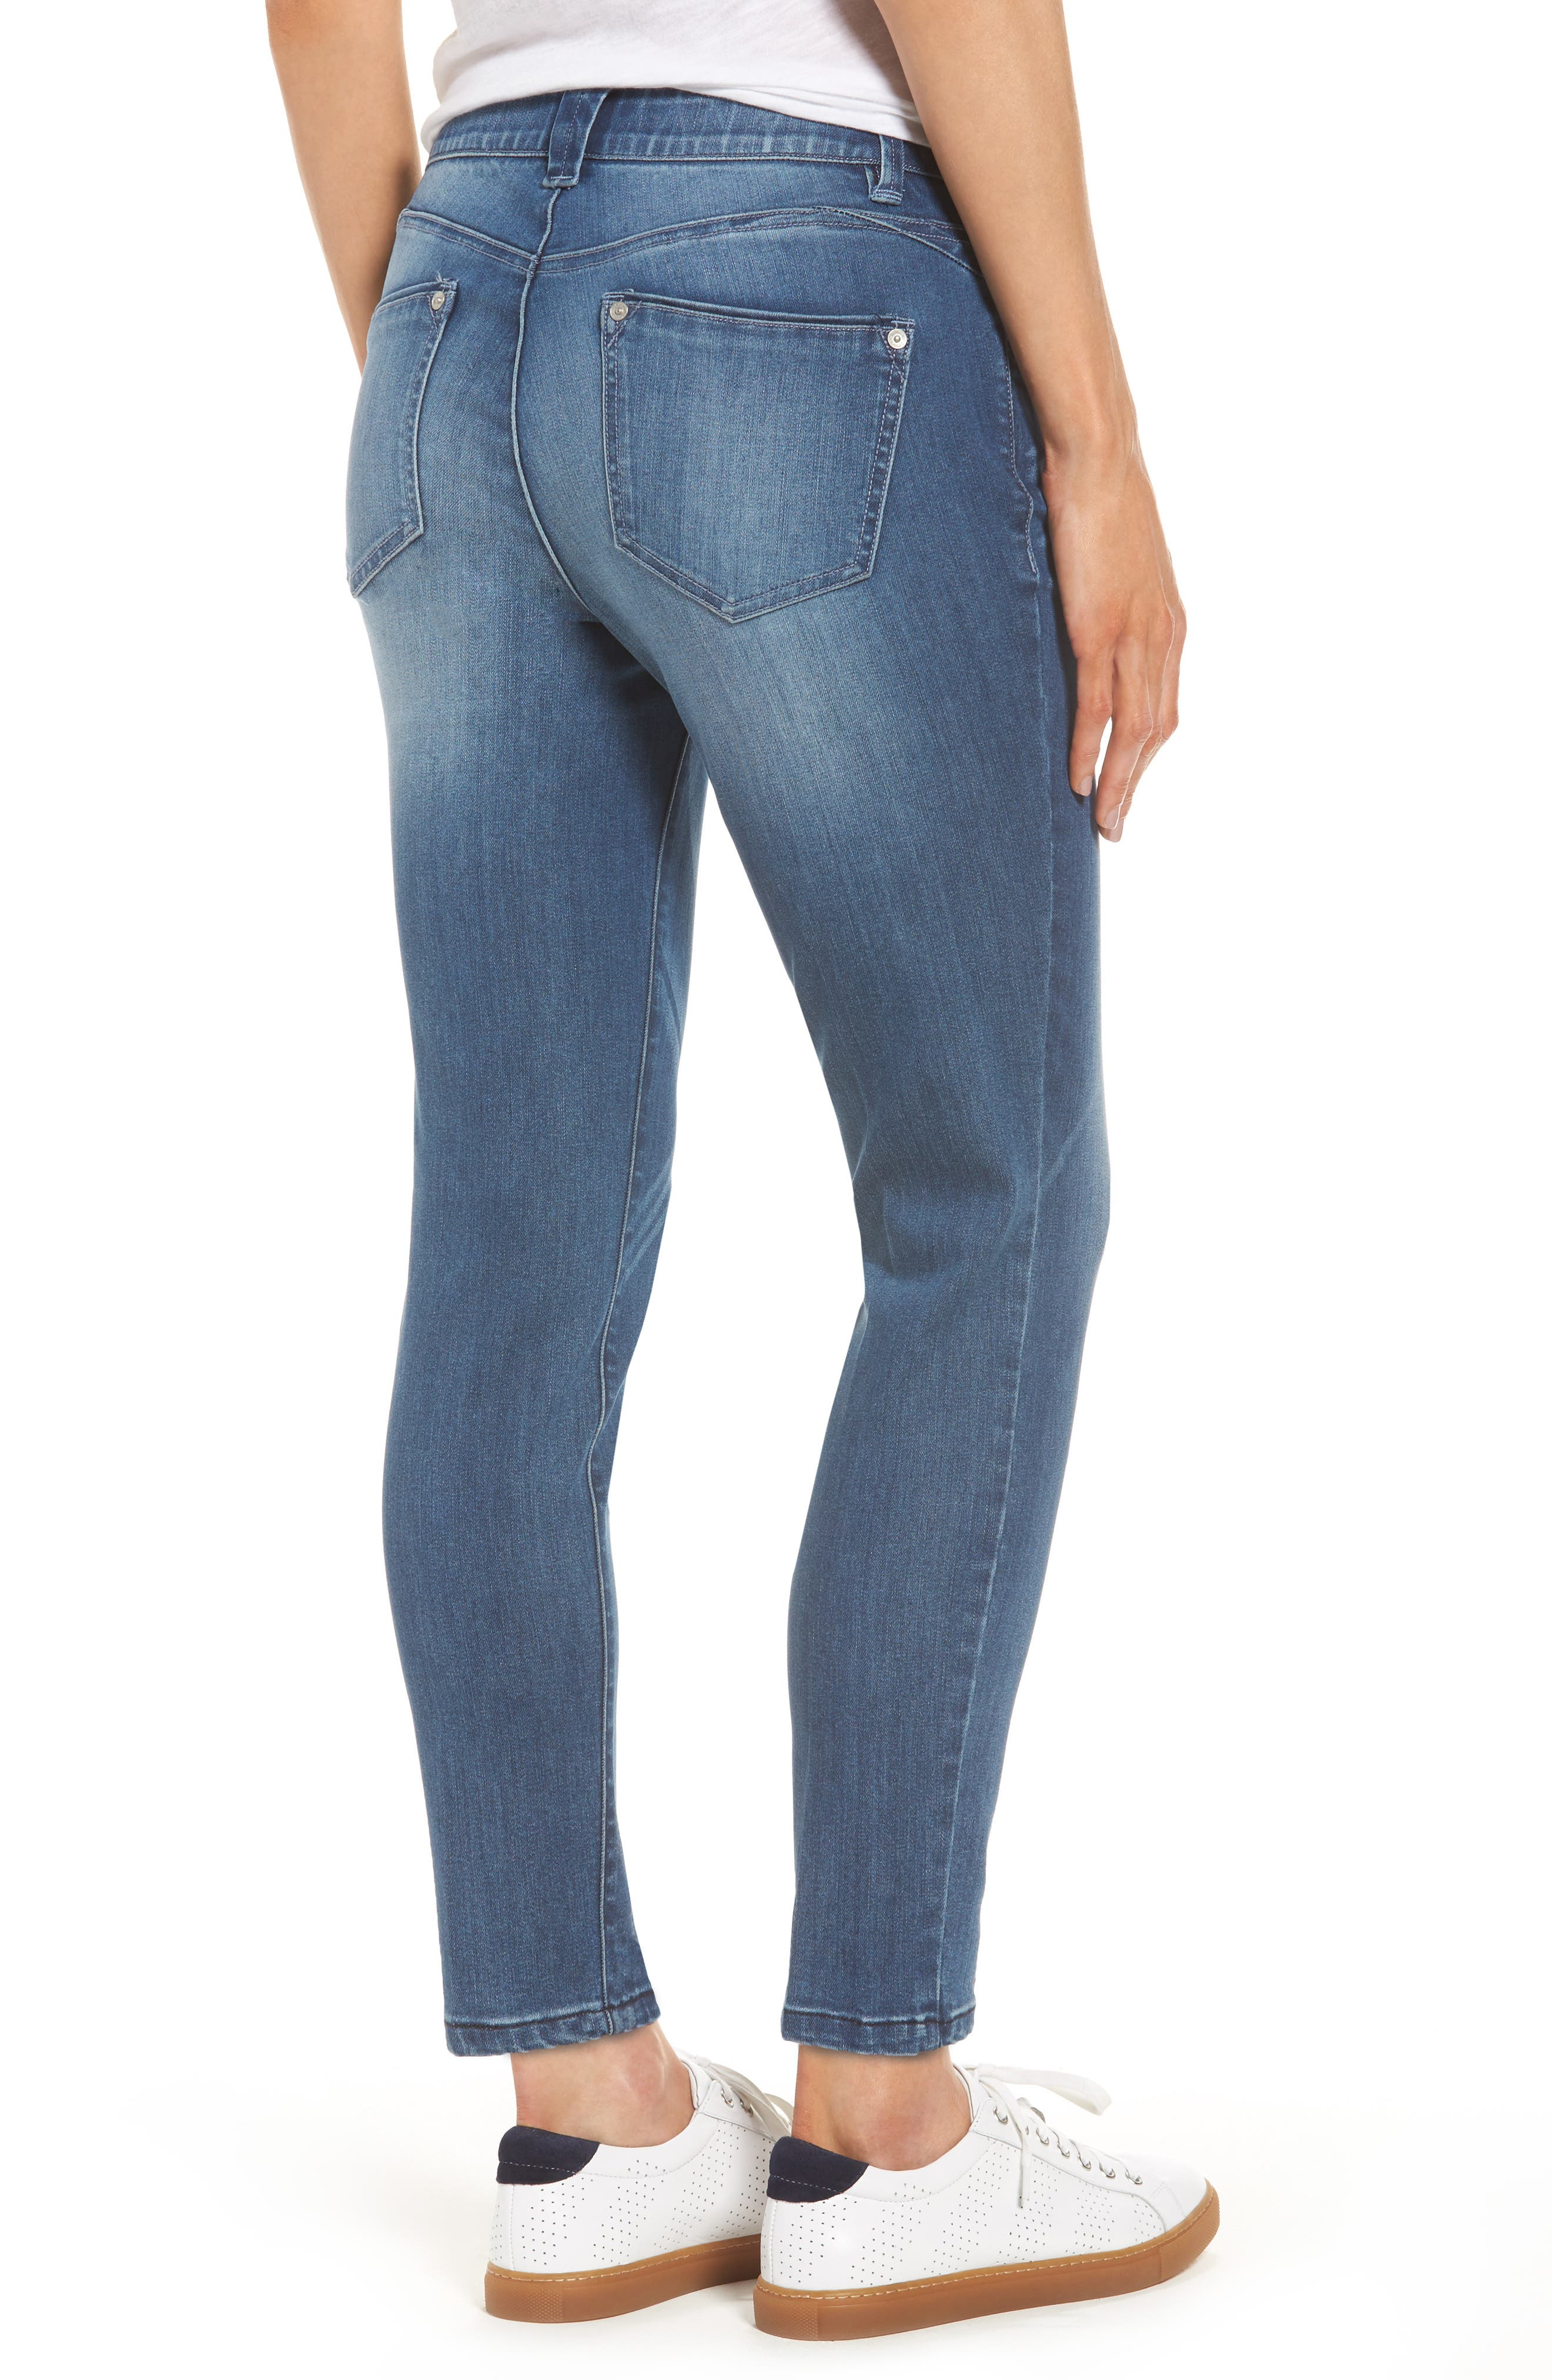 Alternate Image 2  - Wit & Wisdom Ab-solution Stretch Ankle Skinny Jeans (Regular & Petite) (Nordstrom Exclusive)